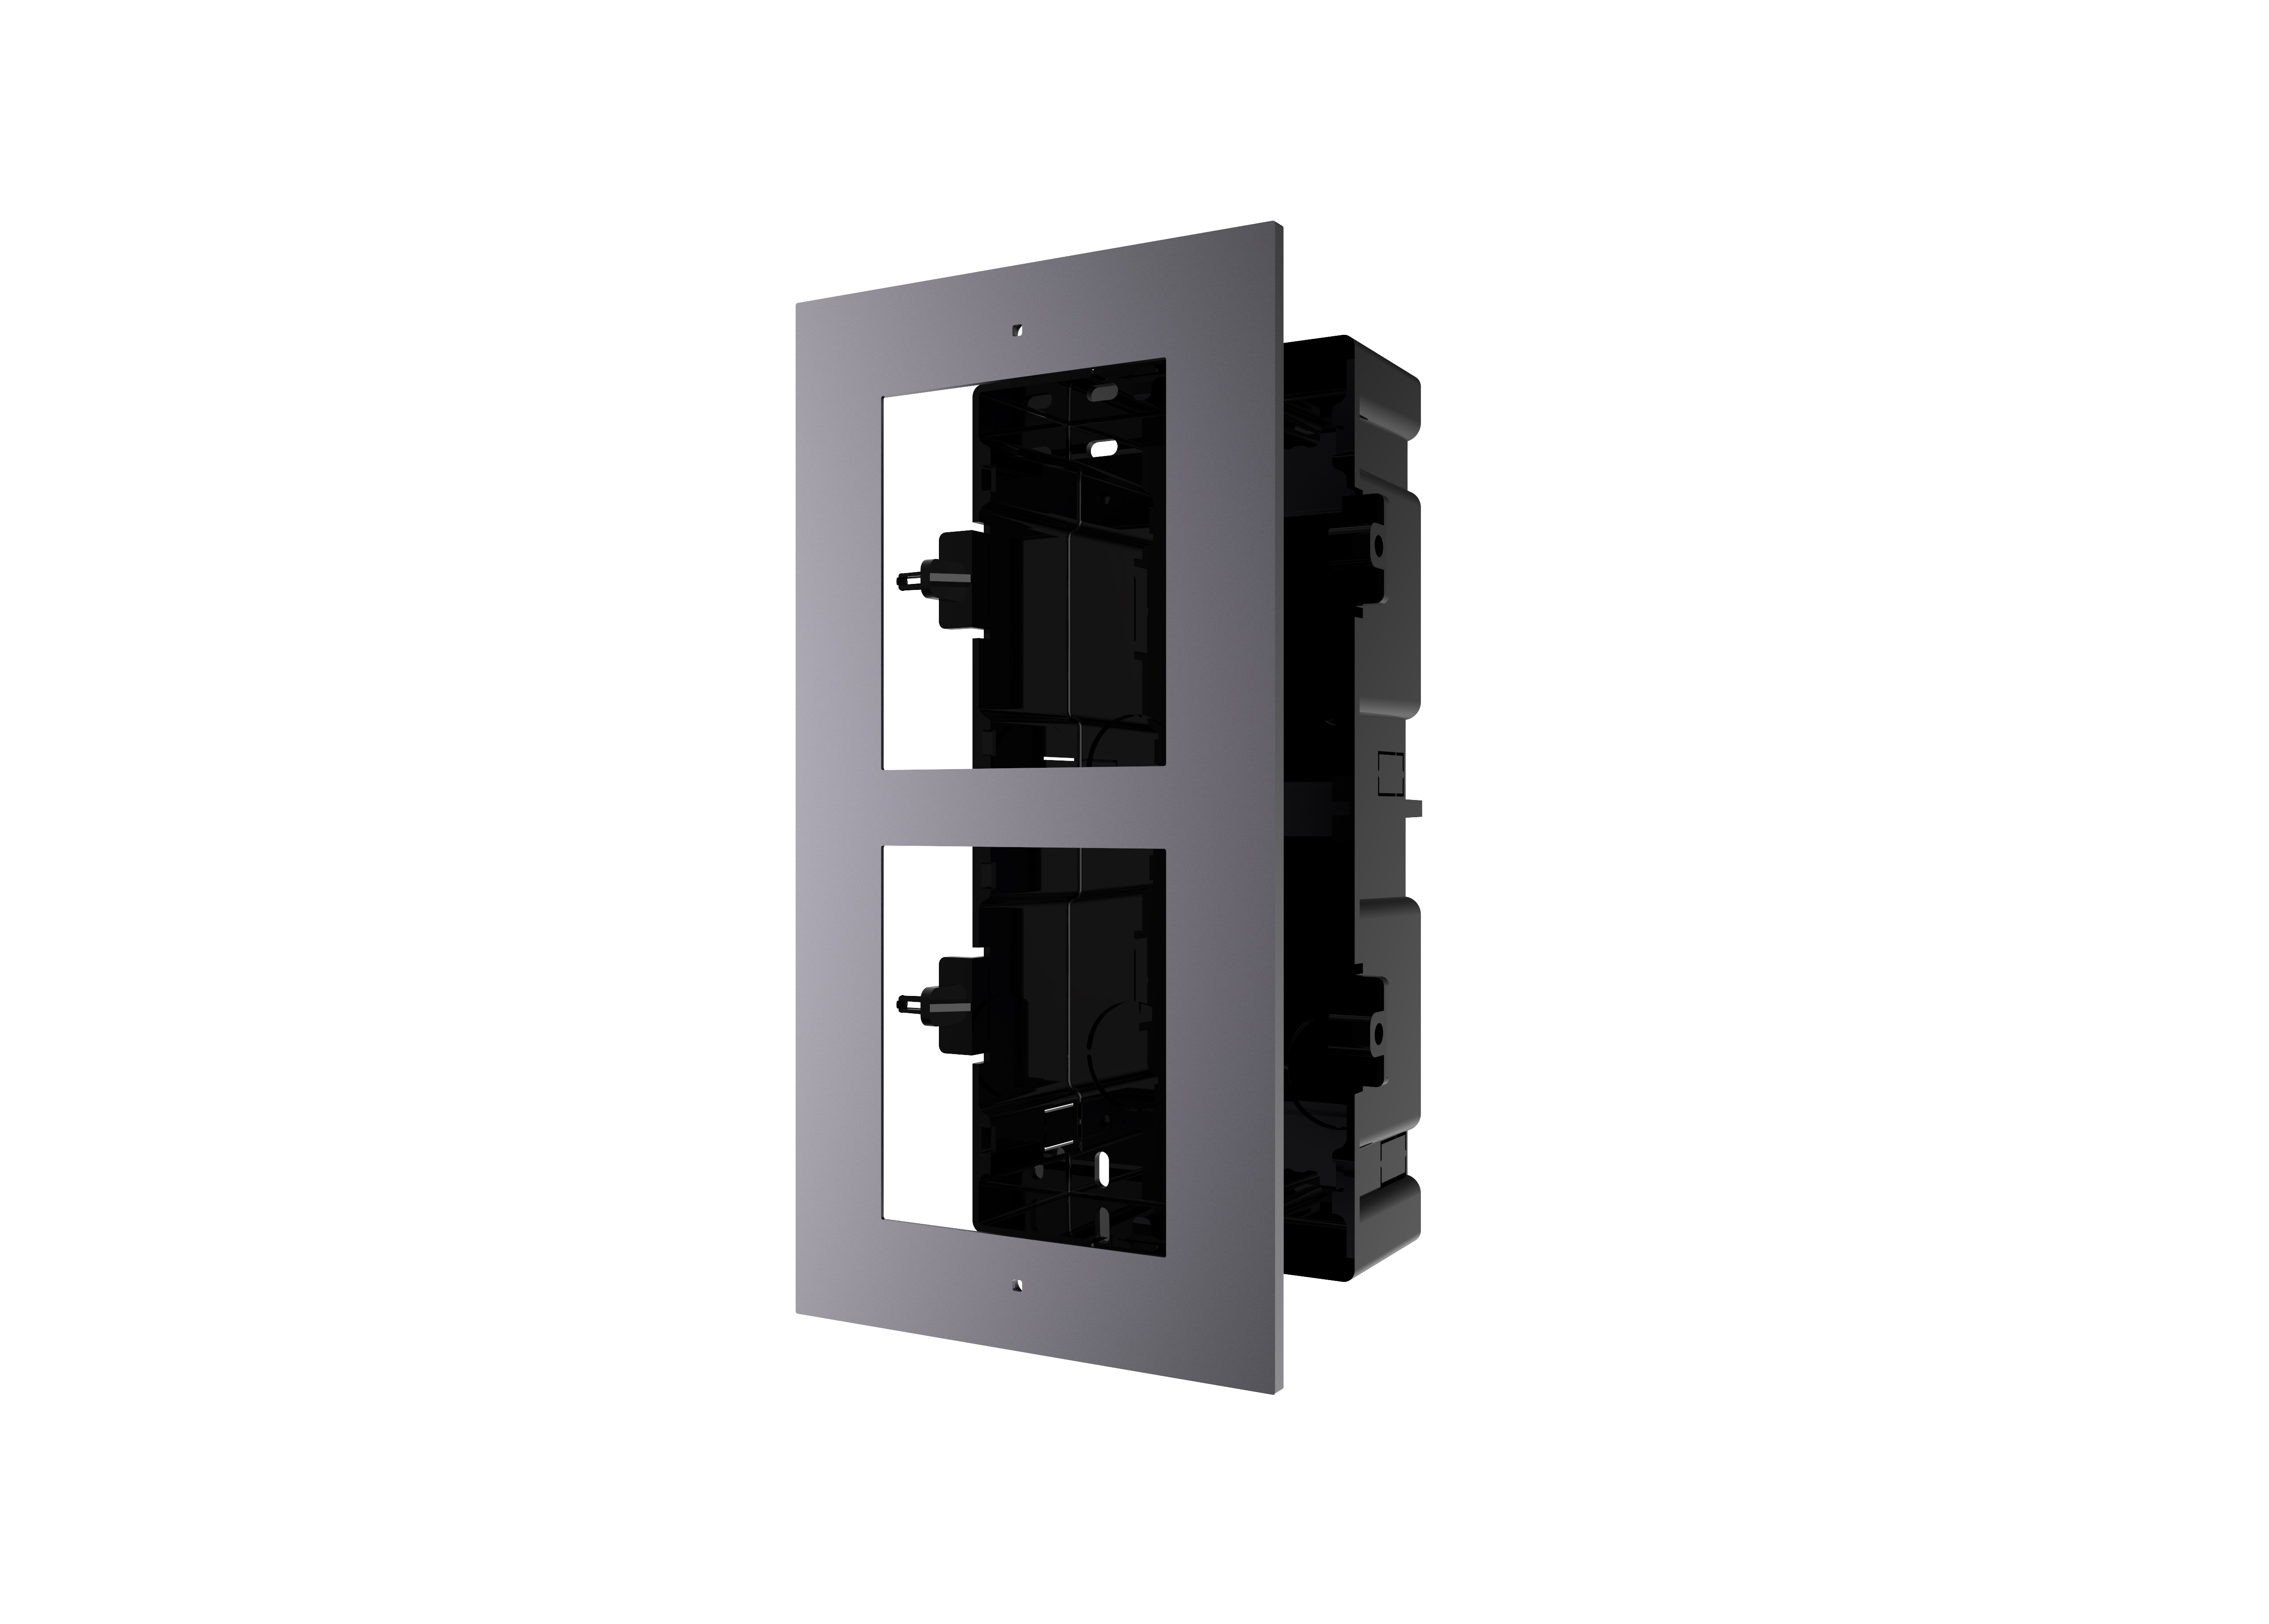 HIKVISION DS-KD-ACF2/PLASTIC 2 way flush mounting bracket for modular door station